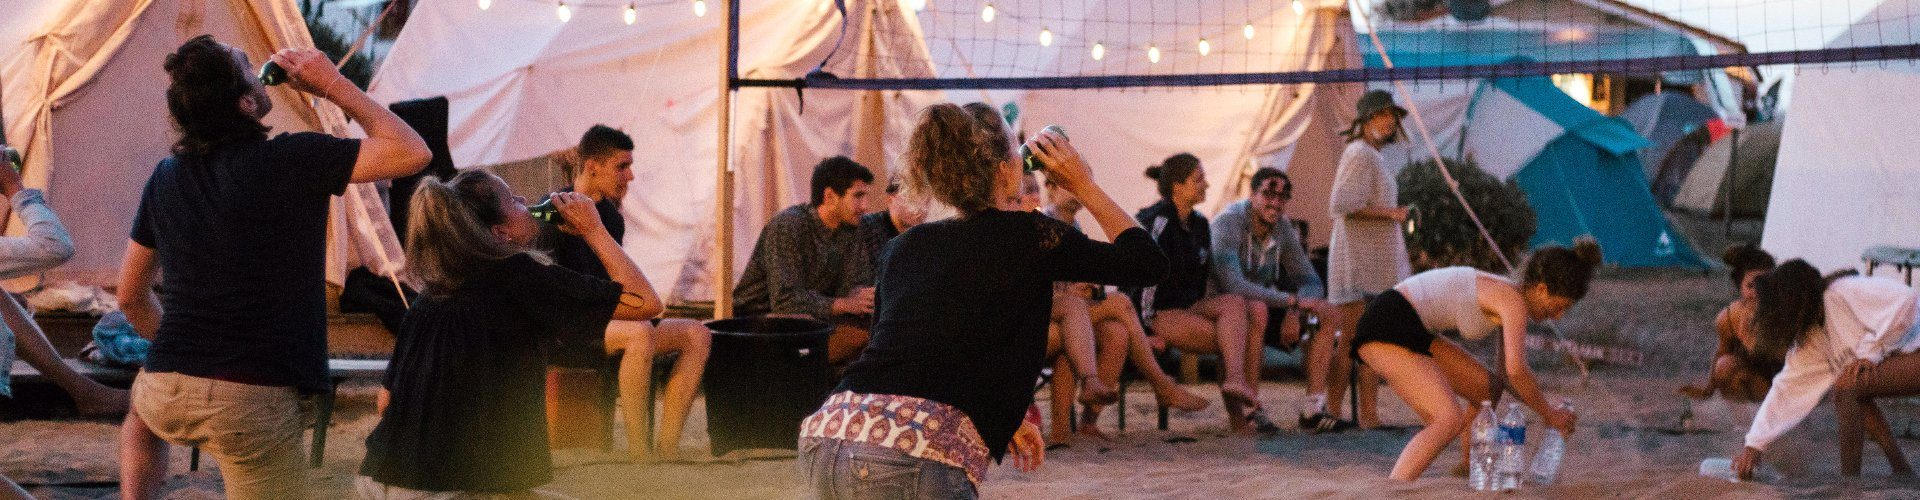 Glamping tents in Vieux Boucau surf camp